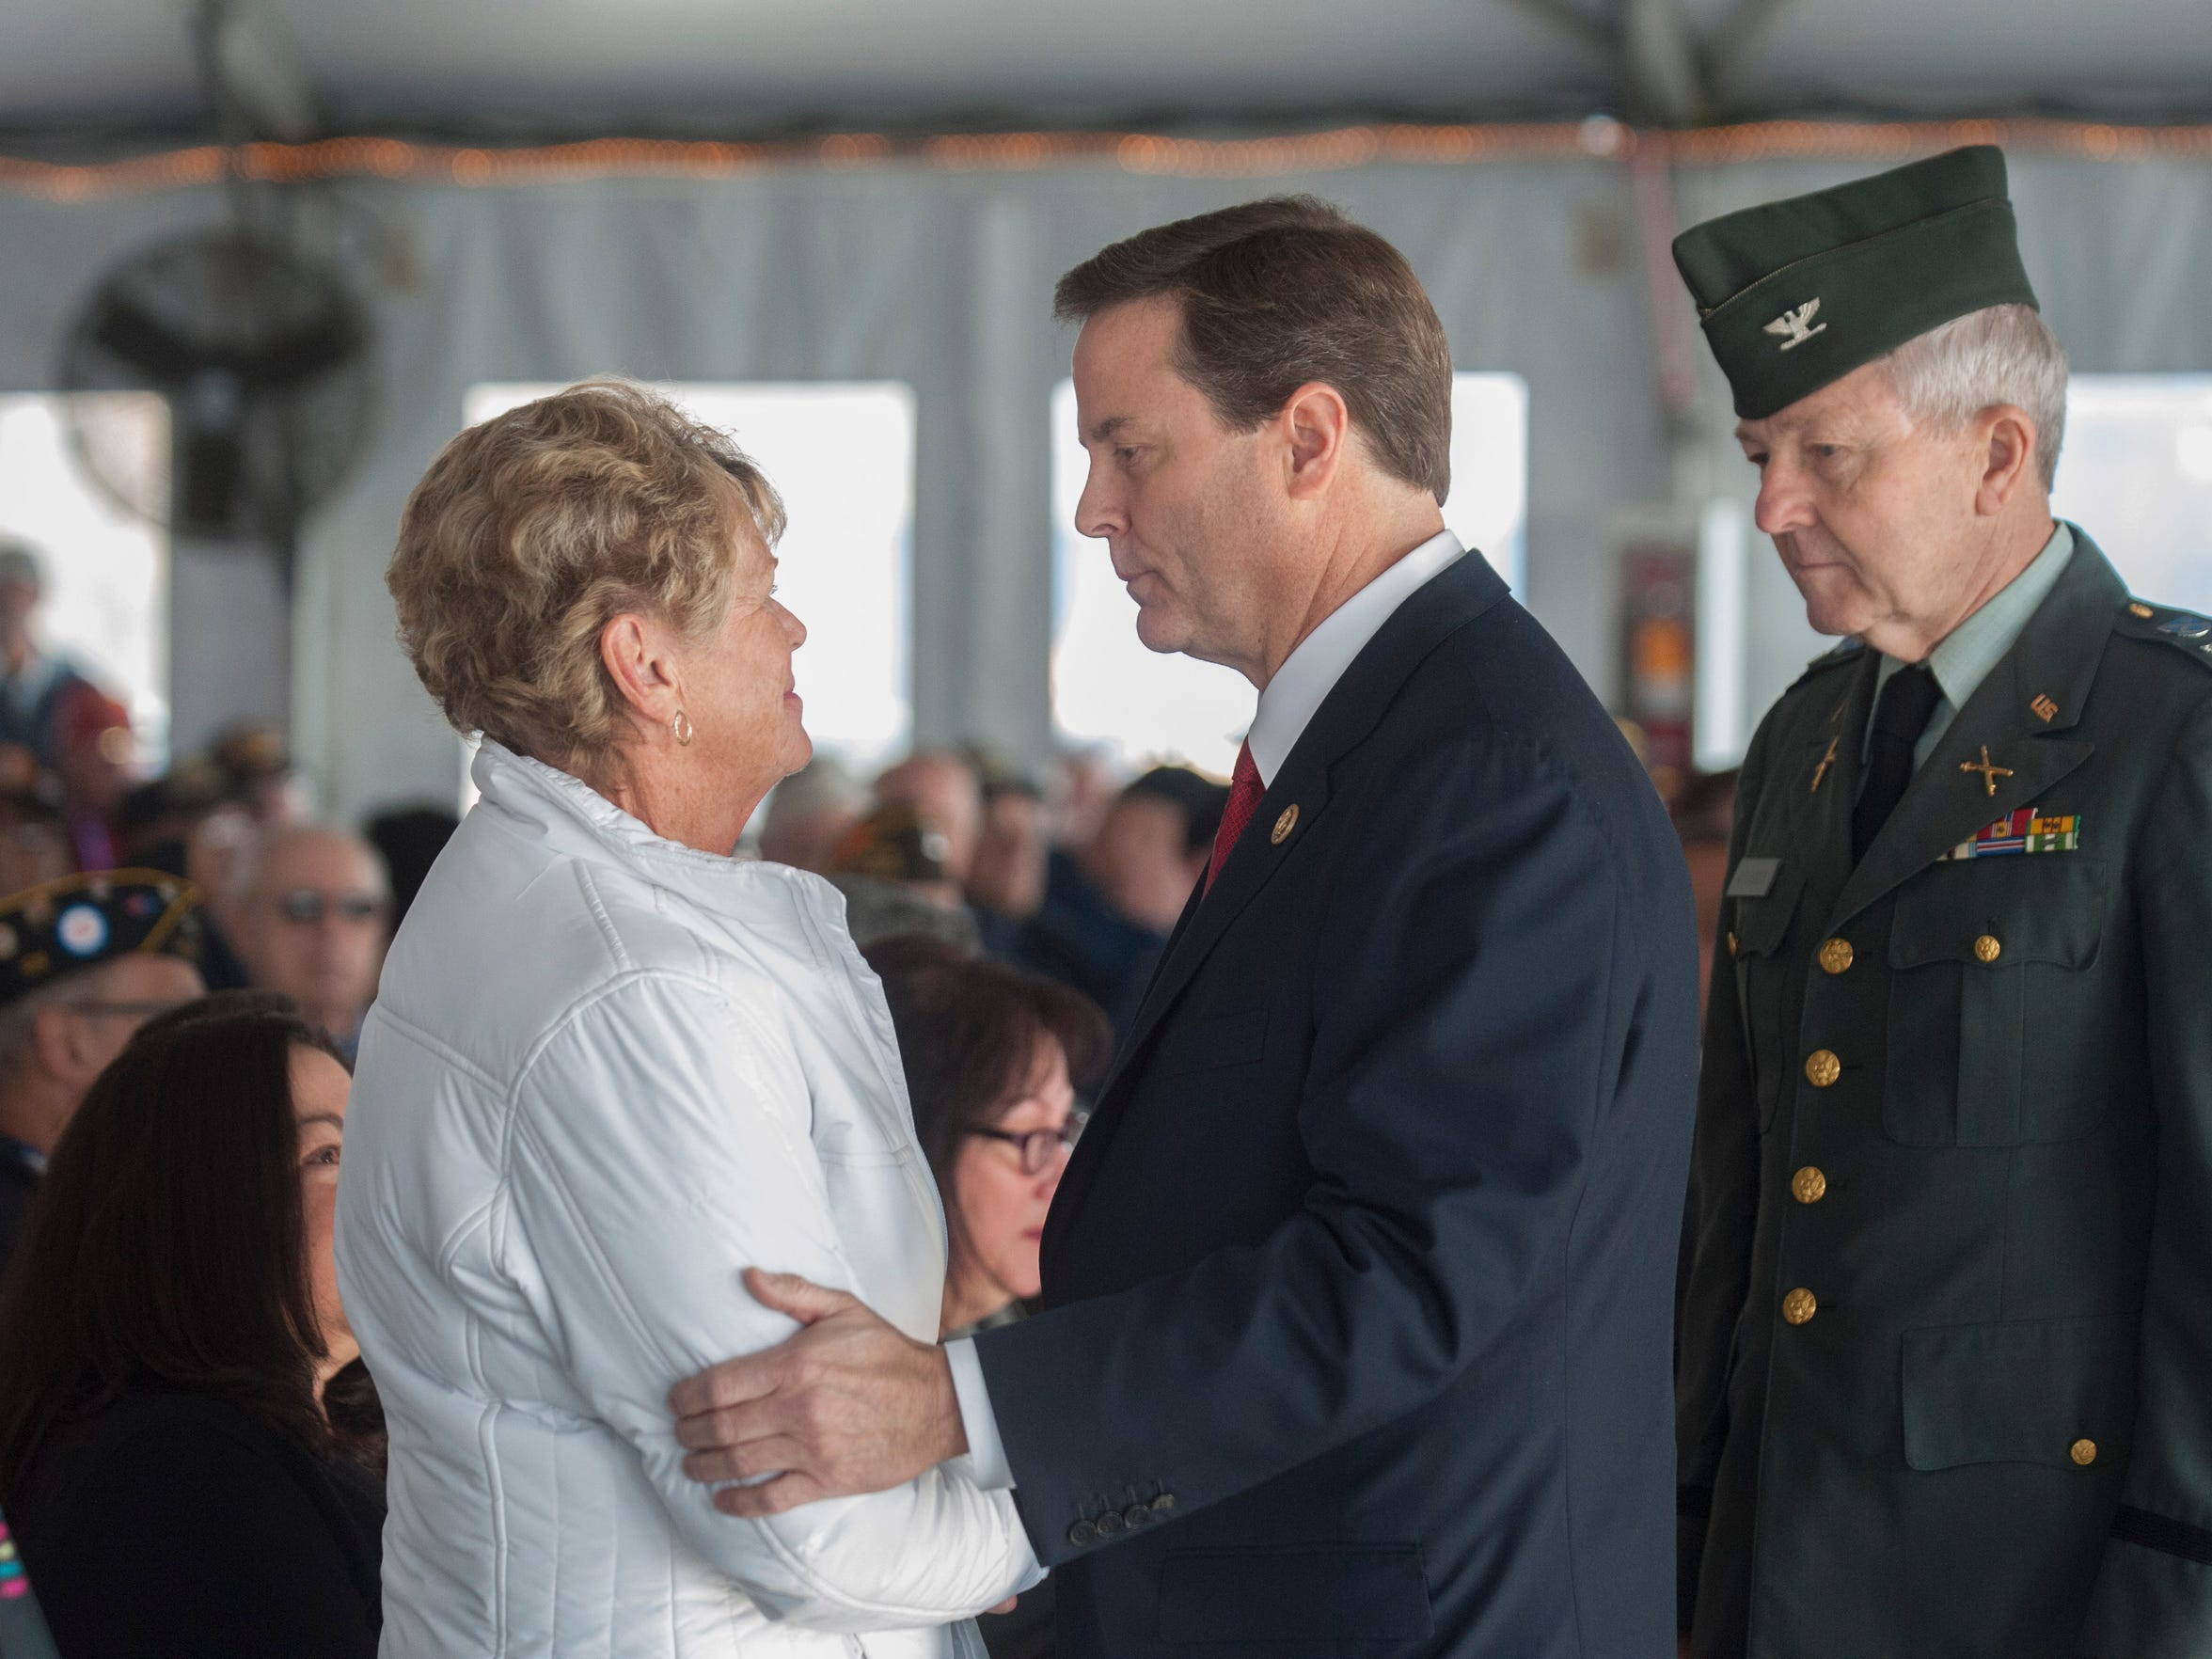 Congressman Donald Norcross speaks with Gold Star Mother Judith Tapper of Atco who lost her son David Tapper in Afganistan in 2003 during the Pearl Harbor Day Commemoration aboard the Battleship New Jersey. Monday, December 7, 2015.